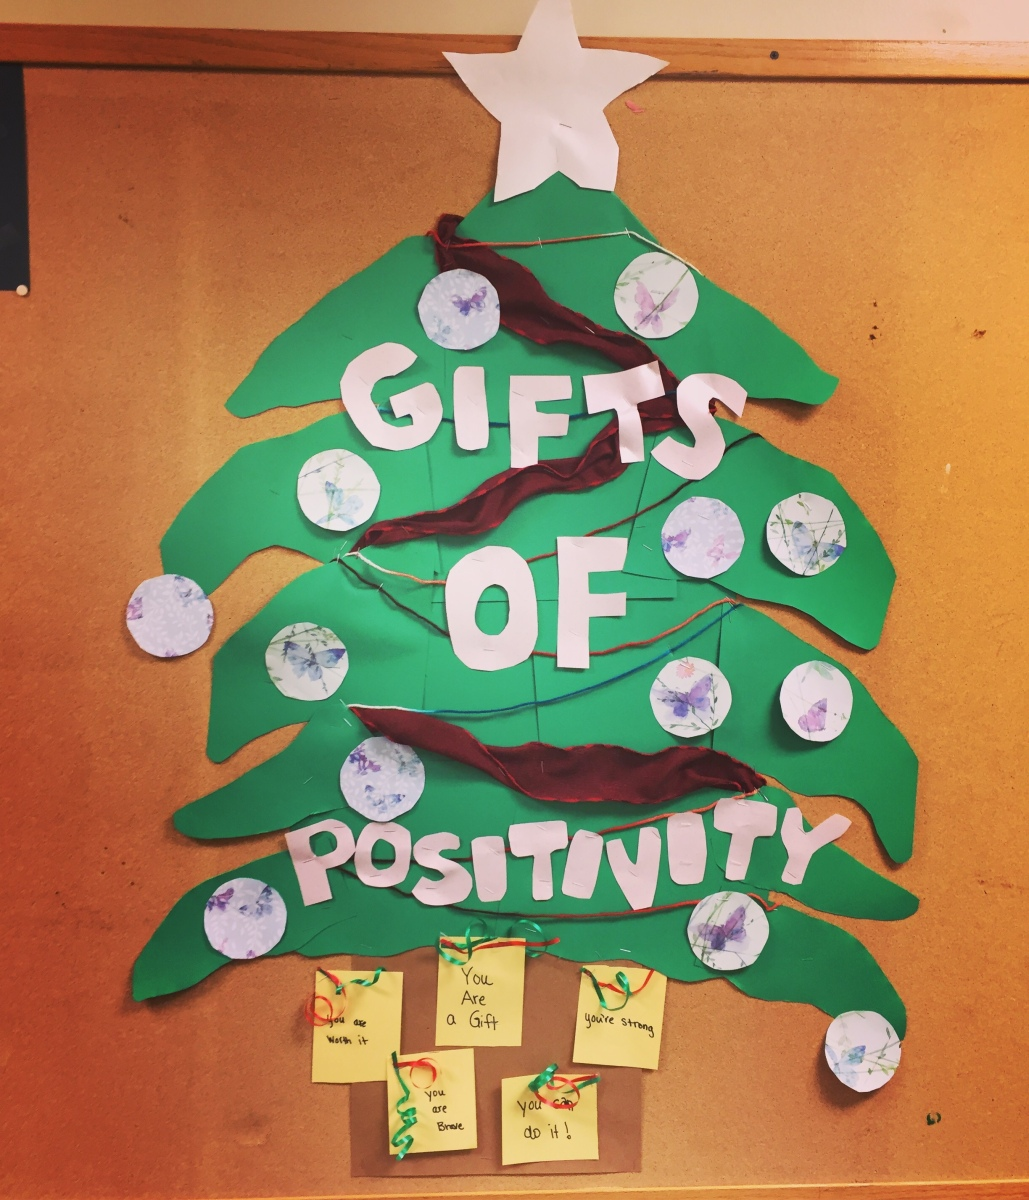 Gifts Of Positivity - A Christmas Bulletin Board Idea